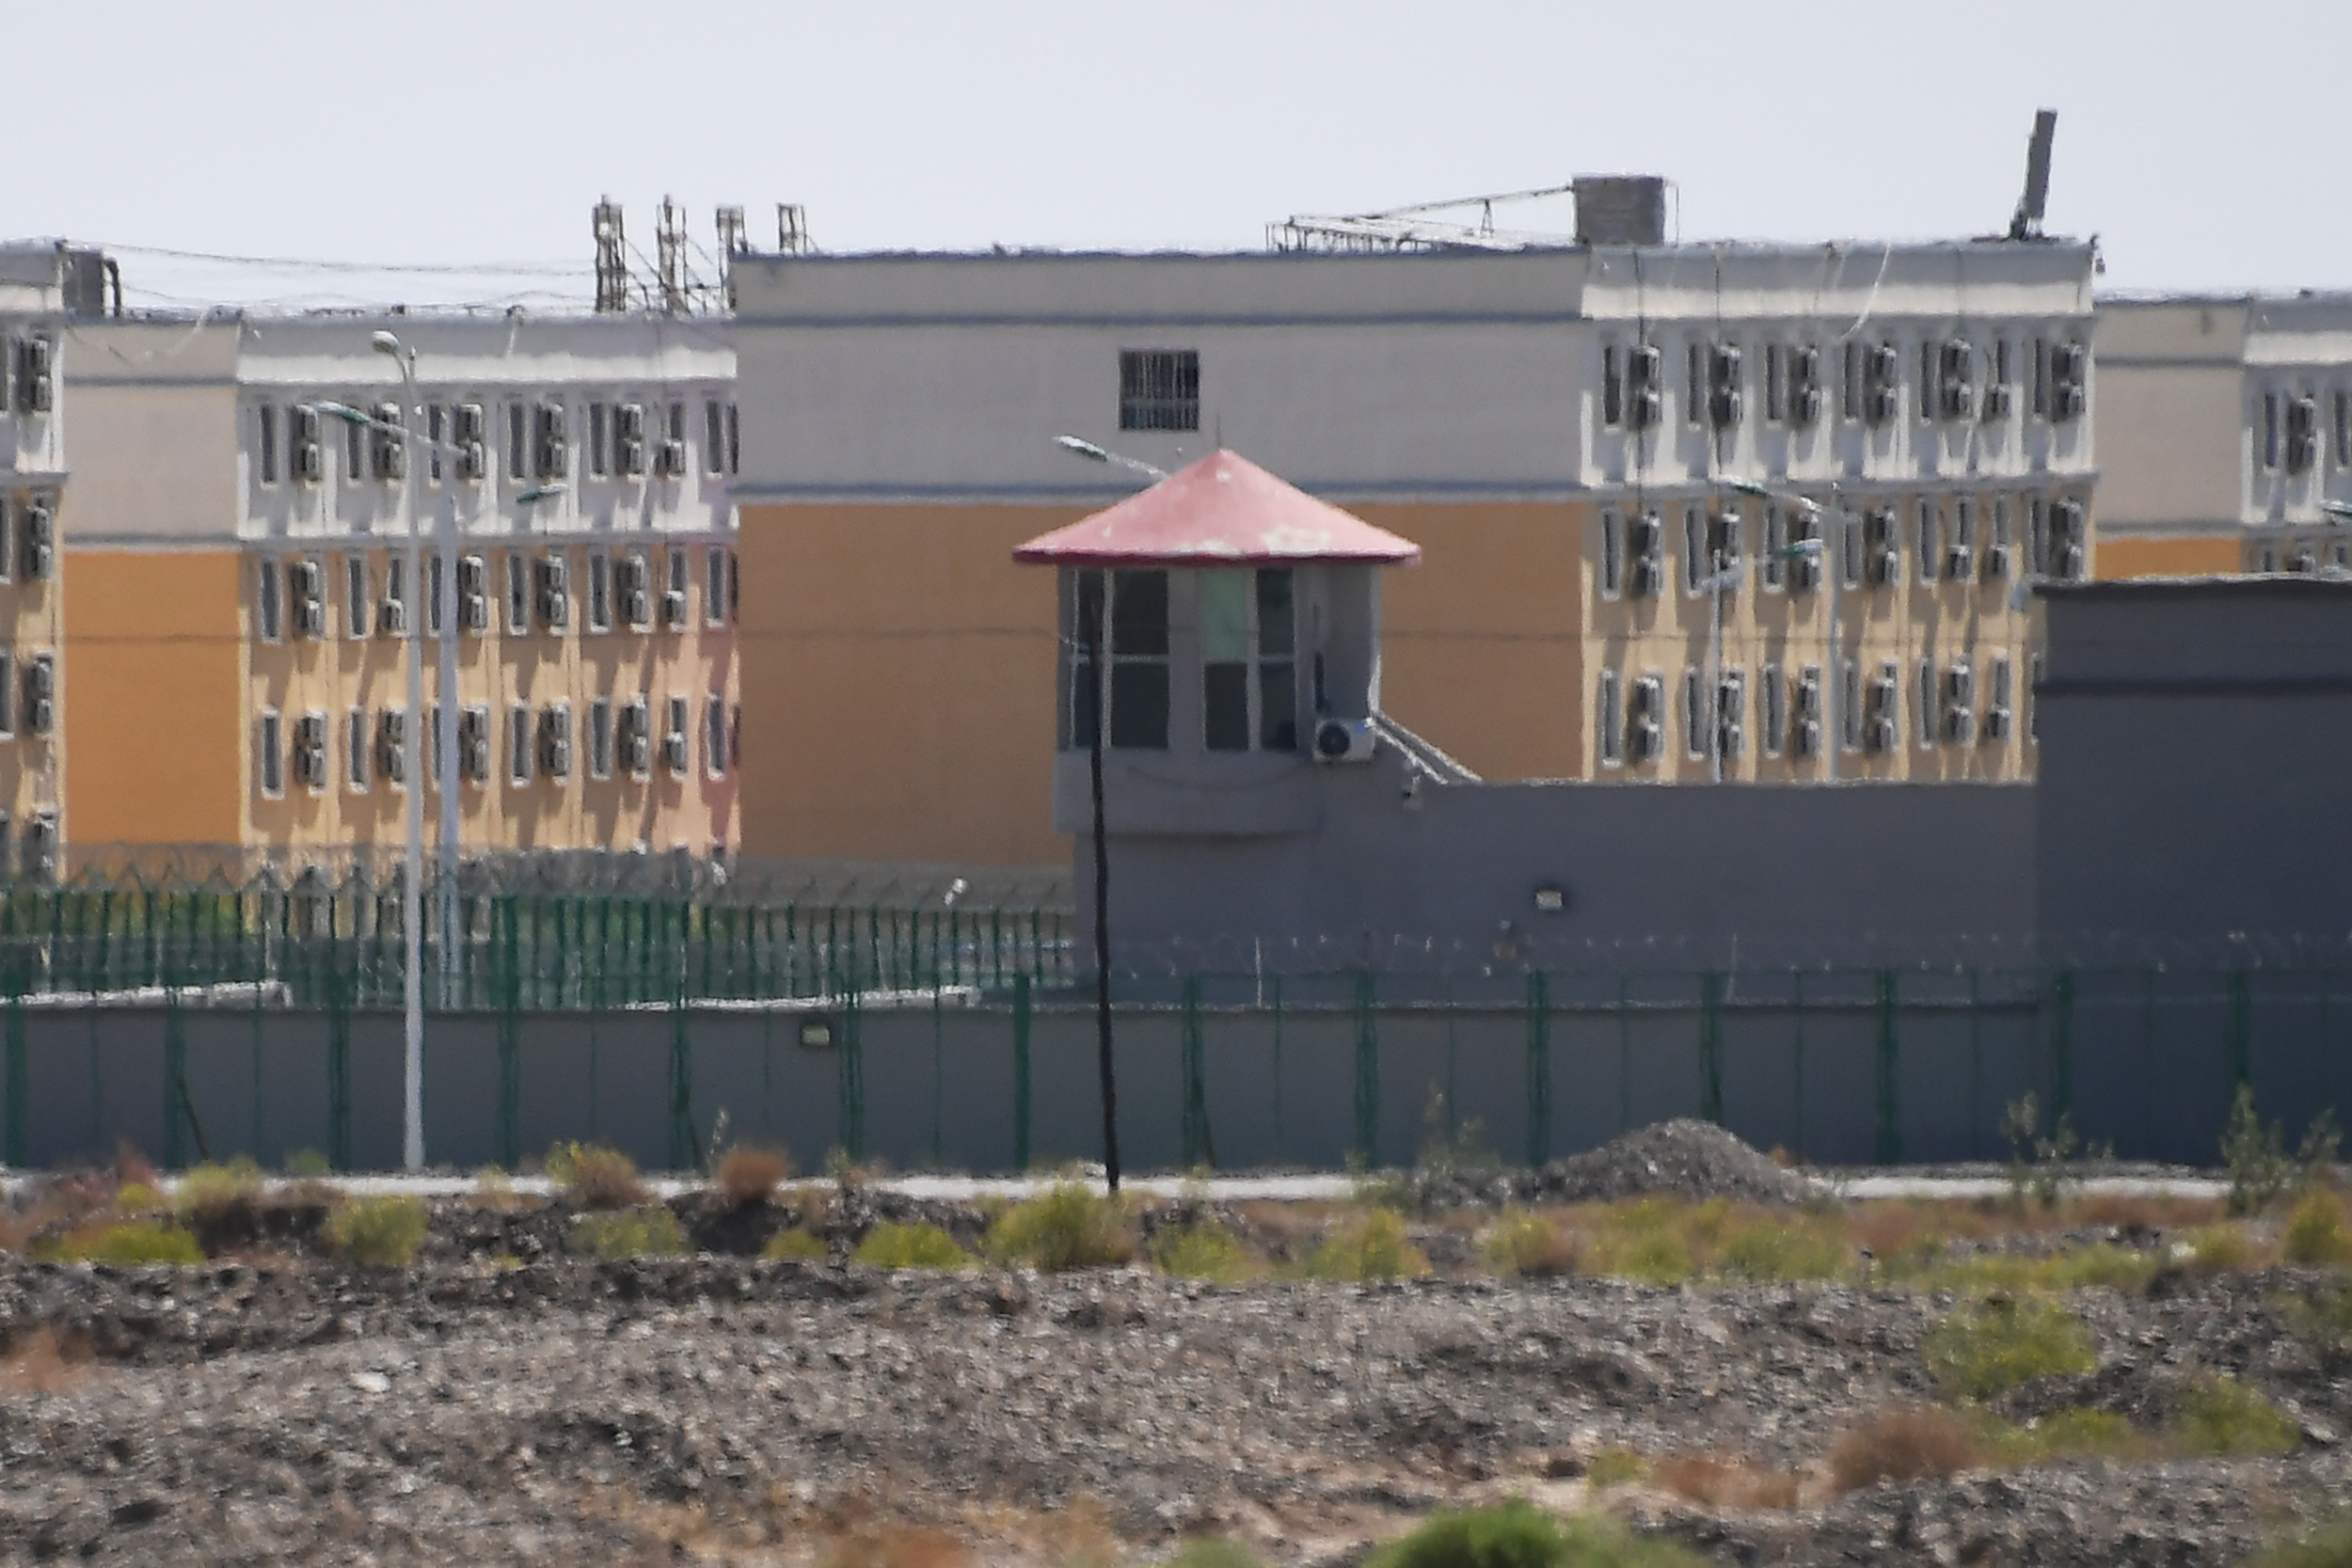 This photo taken on June 2, 2019 shows buildings at the Artux City Vocational Skills Education Training Service Center, believed to be a re-education camp where mostly Muslim ethnic minorities are detained, north of Kashgar in China's northwestern Xinjiang region. - As many as one million ethnic Uighurs and other mostly Muslim minorities are believed to be held in a network of internment camps in Xinjiang, but China has not given any figures and describes the facilities as Òvocational education centresÓ aimed at steering people away from extremism. (Photo by Greg Baker/AFP via Getty Images)